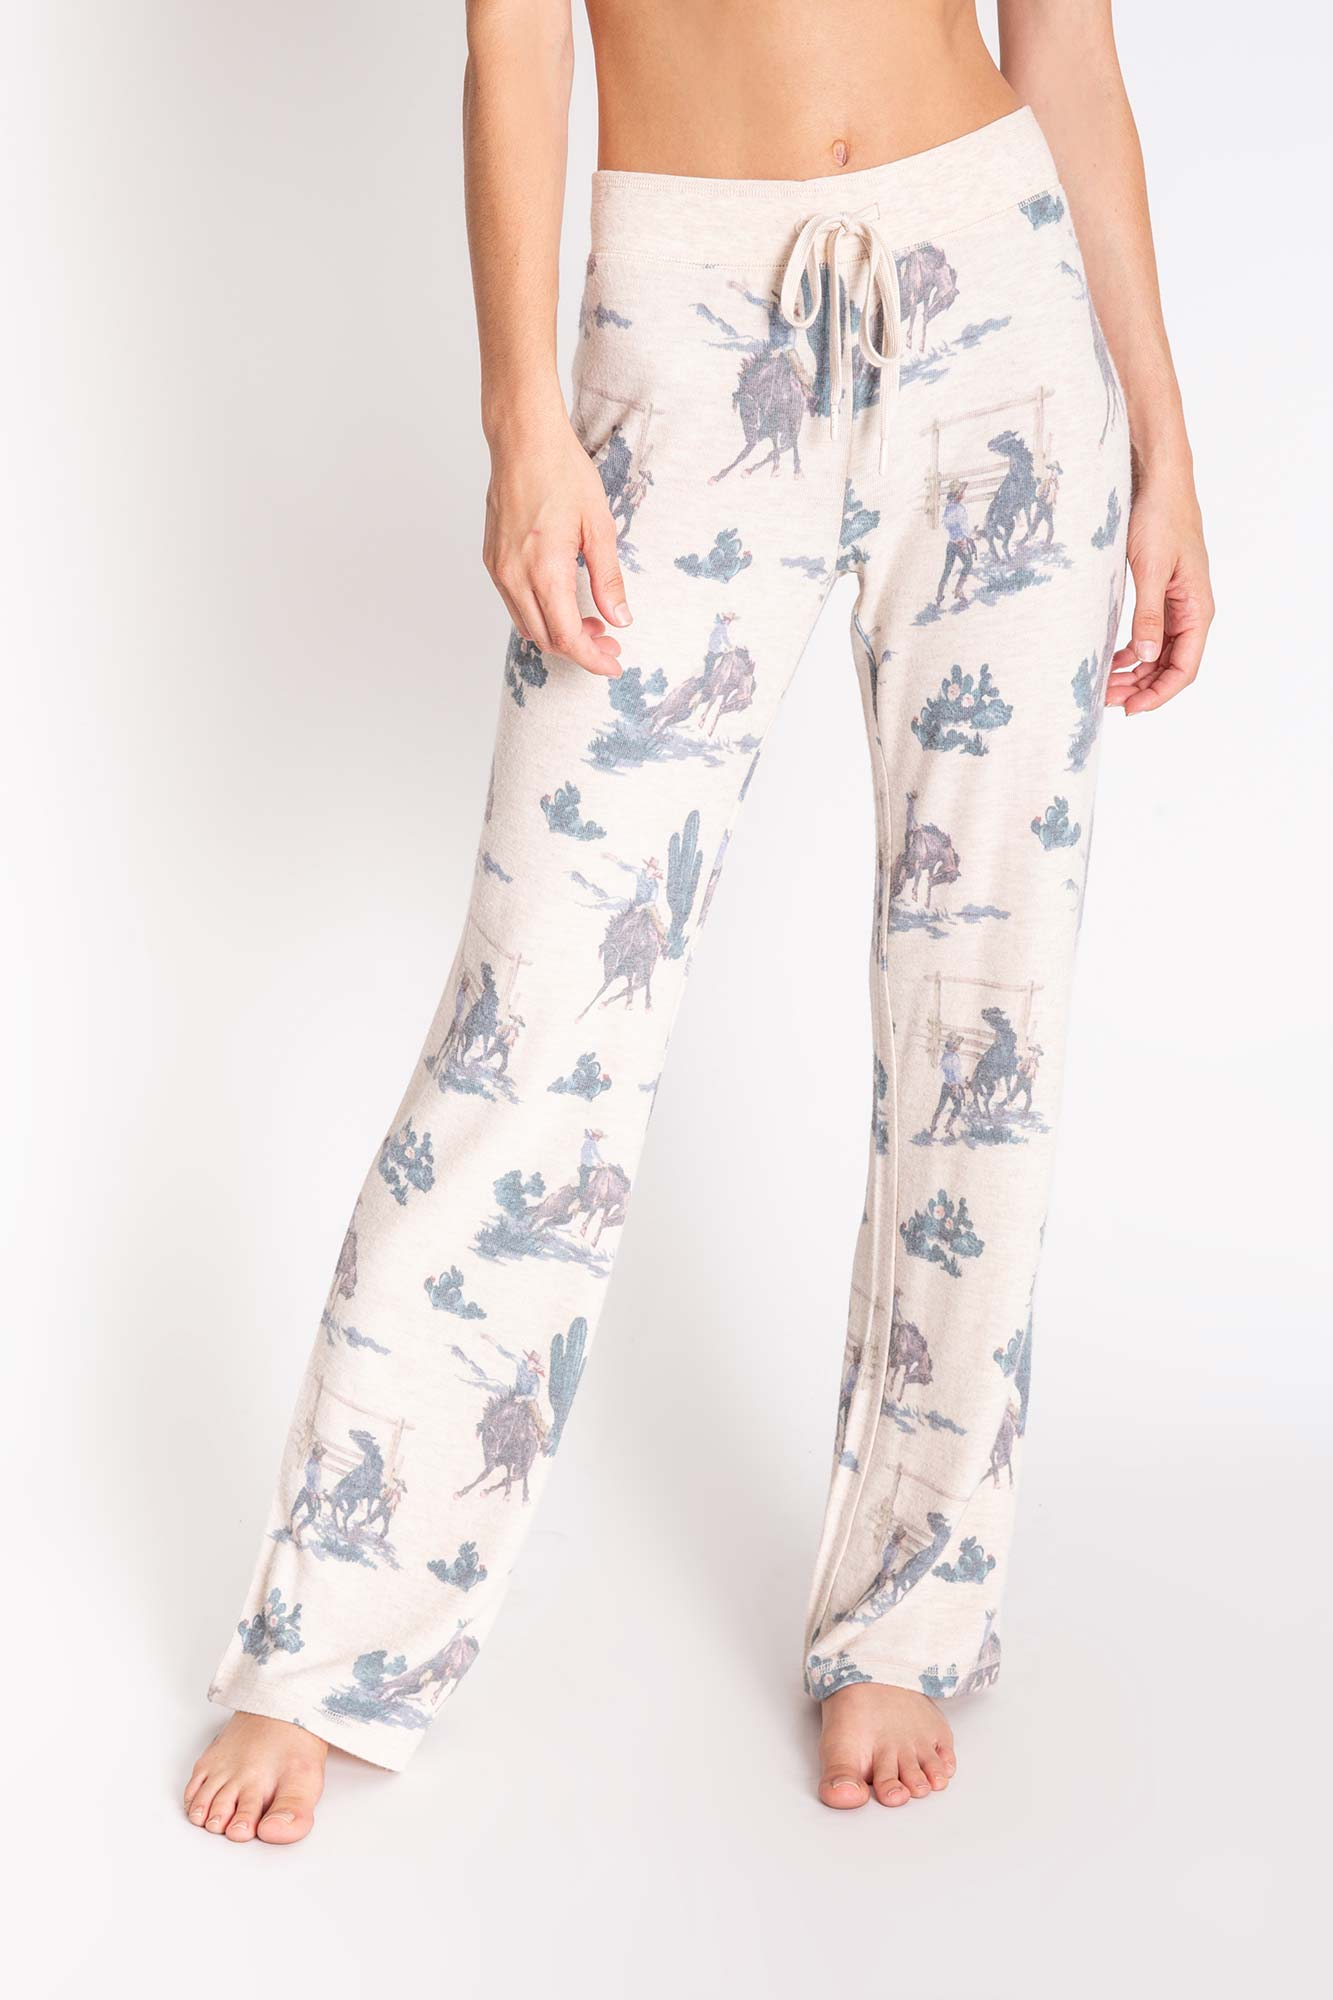 PJ Salvage Wanted Women's Pants